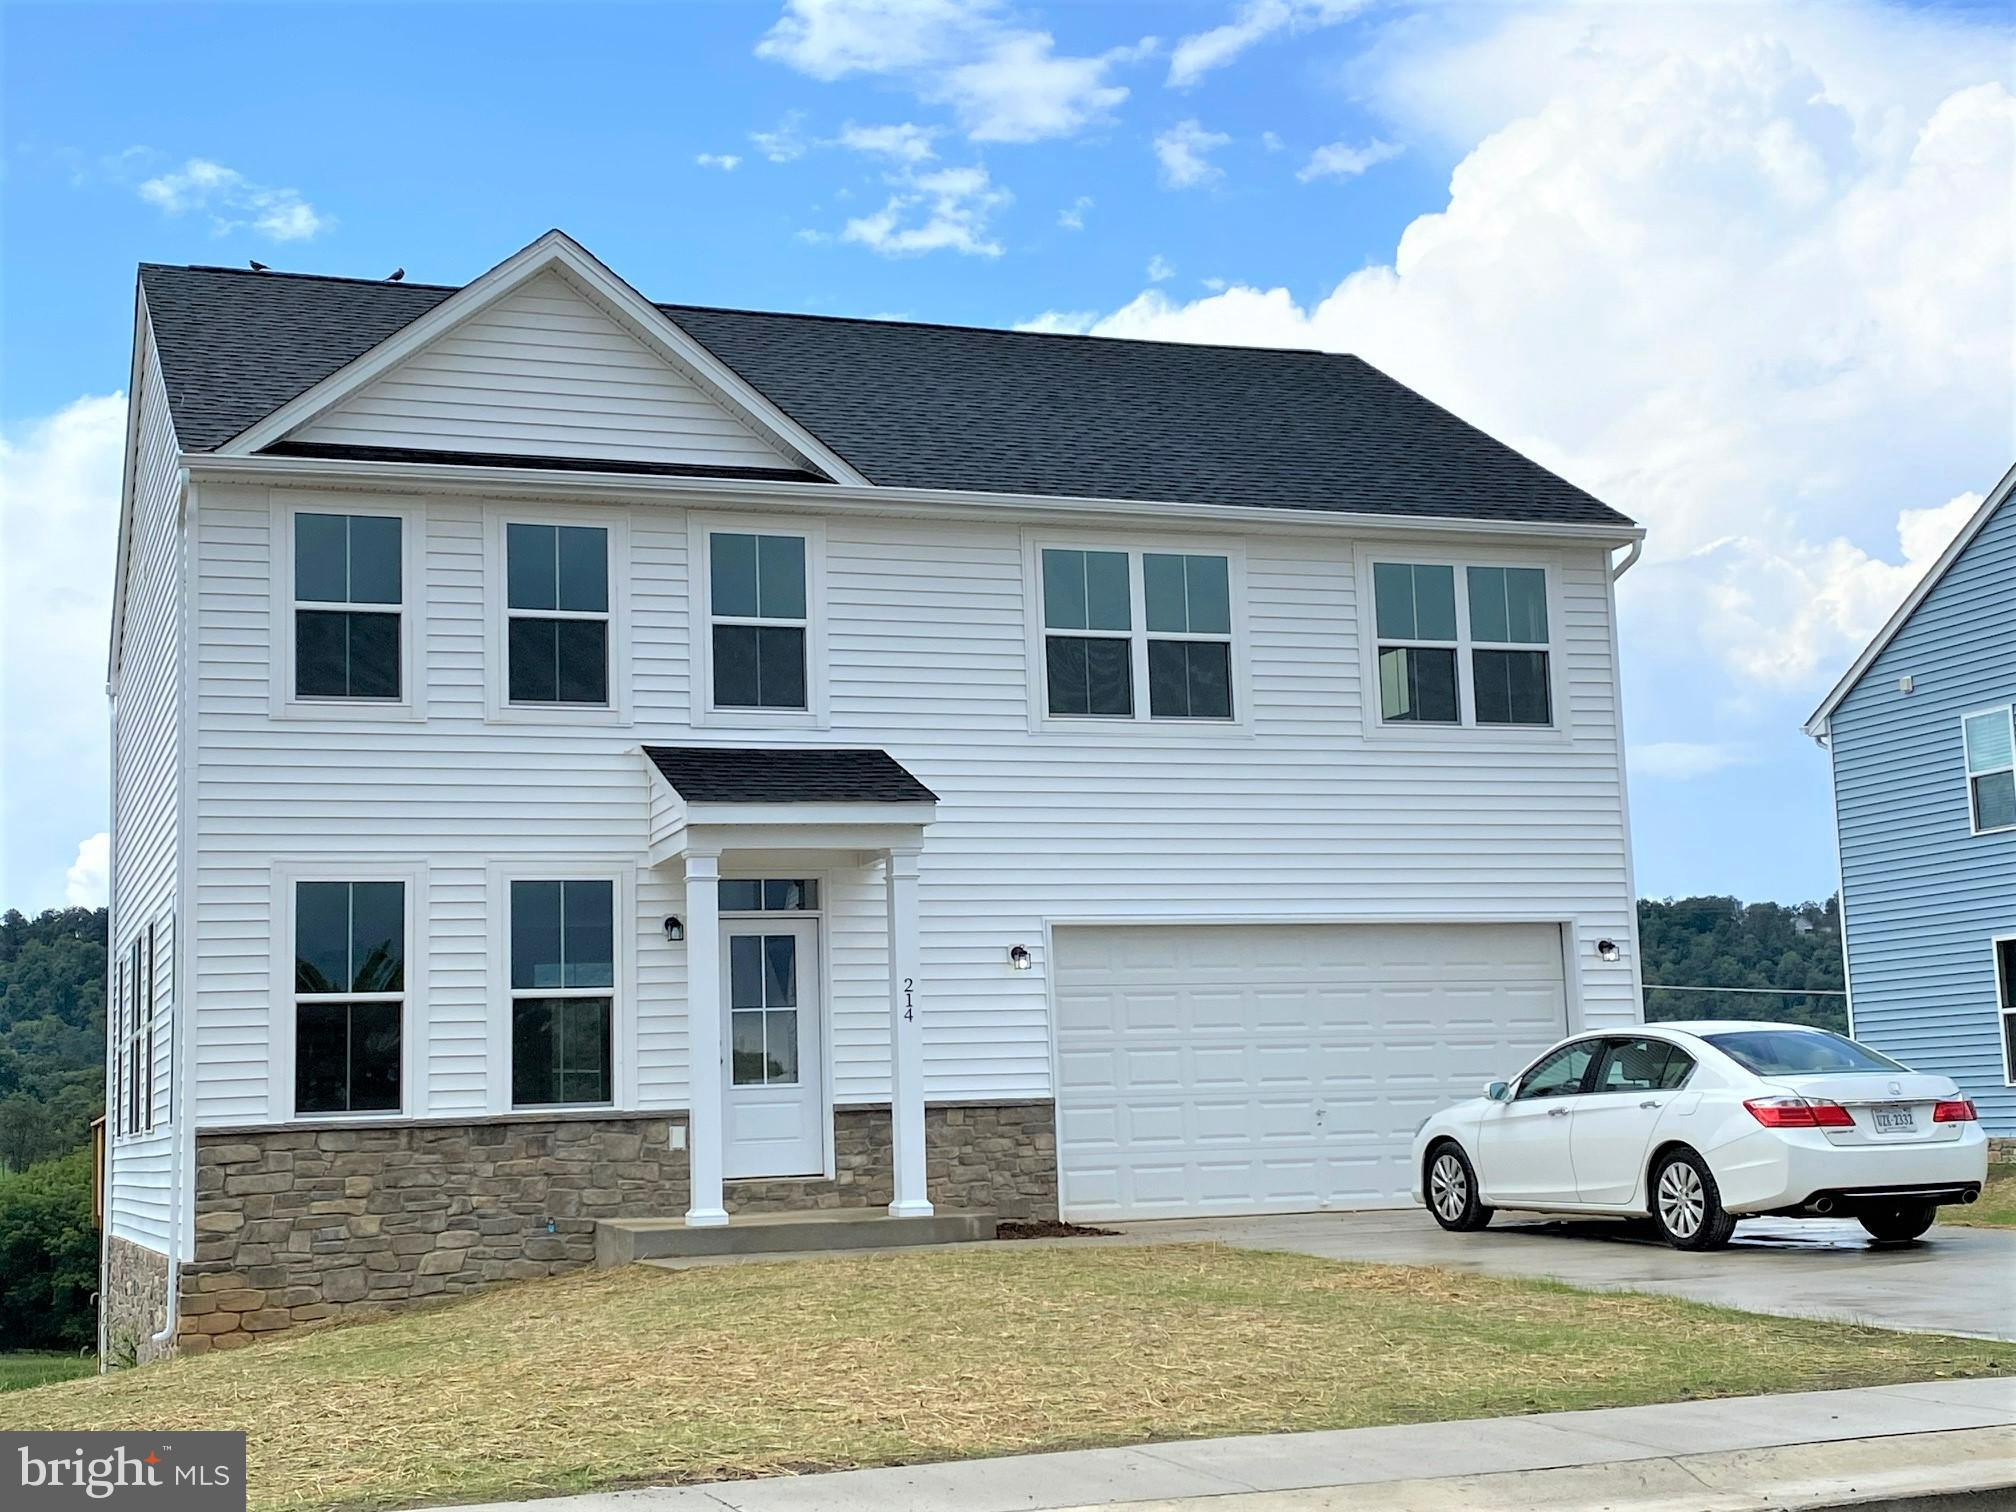 Pre sale, New Construction.... New 5 bedroom, 3 full bath colonial home offering open floor plan w/